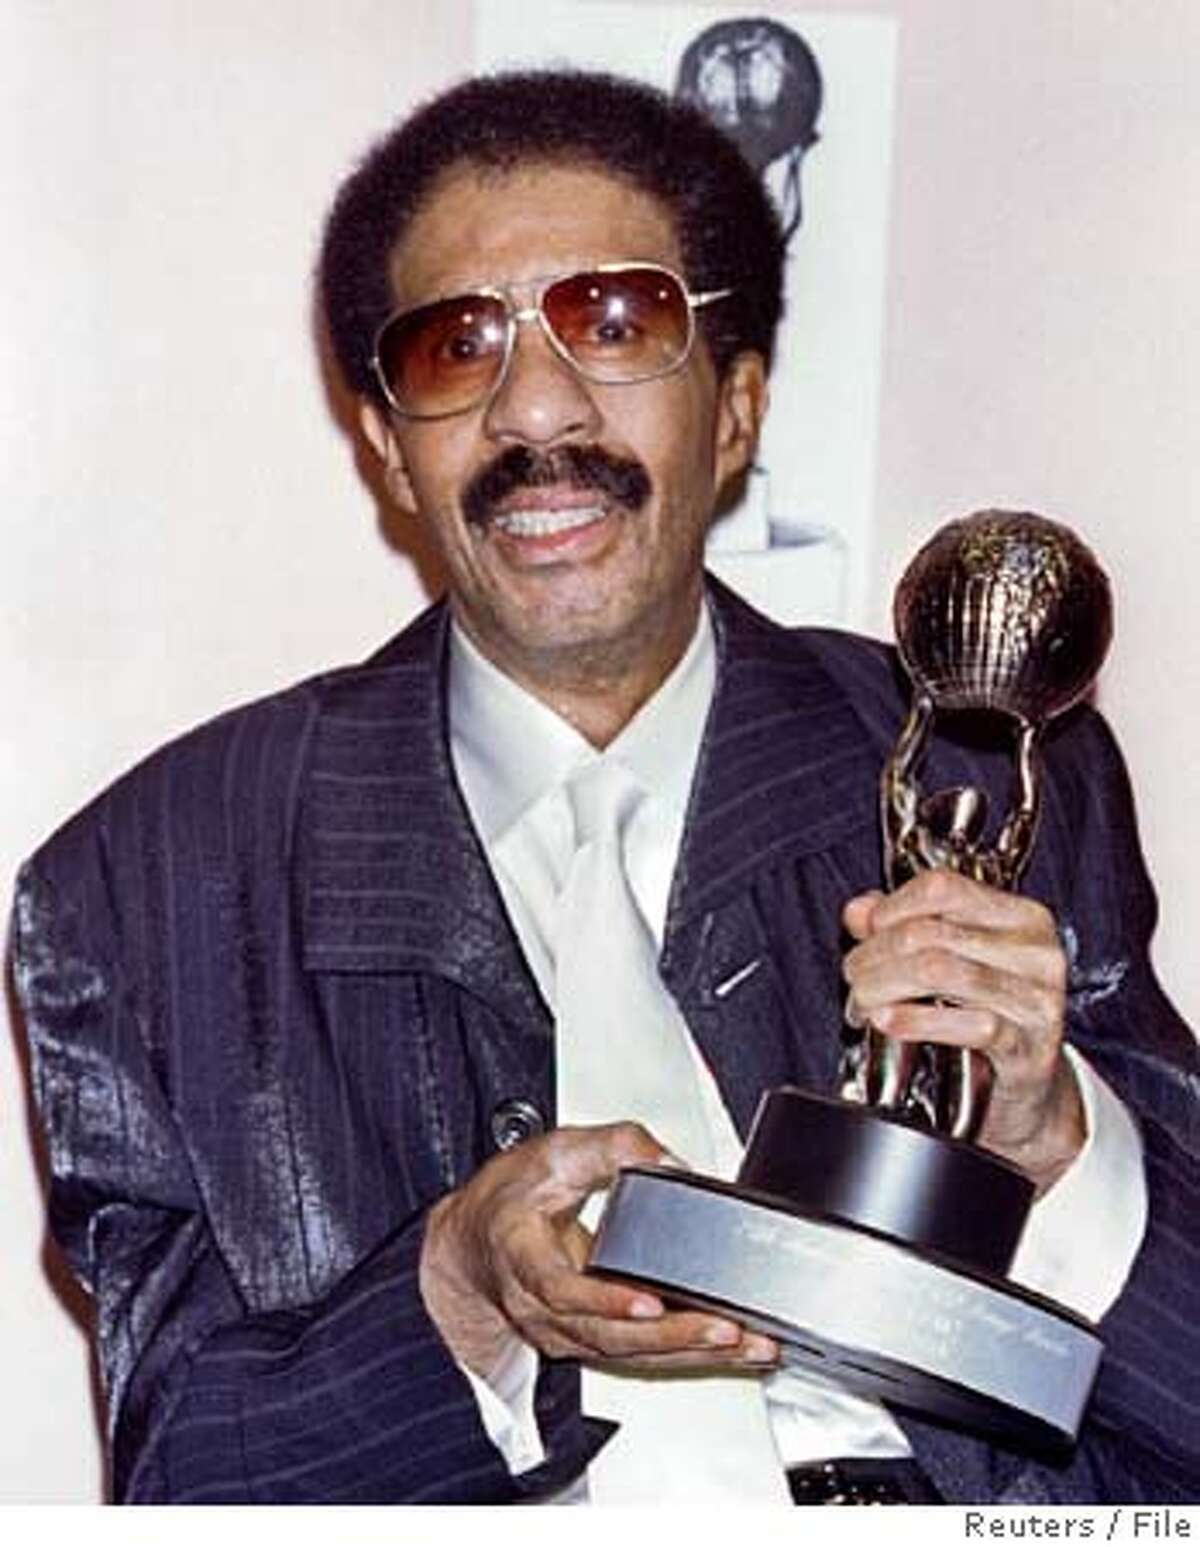 U.S. comedian Richard Pryor holds the Hall of Fame award he received at the 27th National Association for the Advancement of Coloured People's Image Awards in this April 7, 1996 file photo. Pryor has died on December 10, 2005 at age 65 after a long illness, his wife Jennifer Pryor said in a telephone interview with CNN. REUTERS/Files